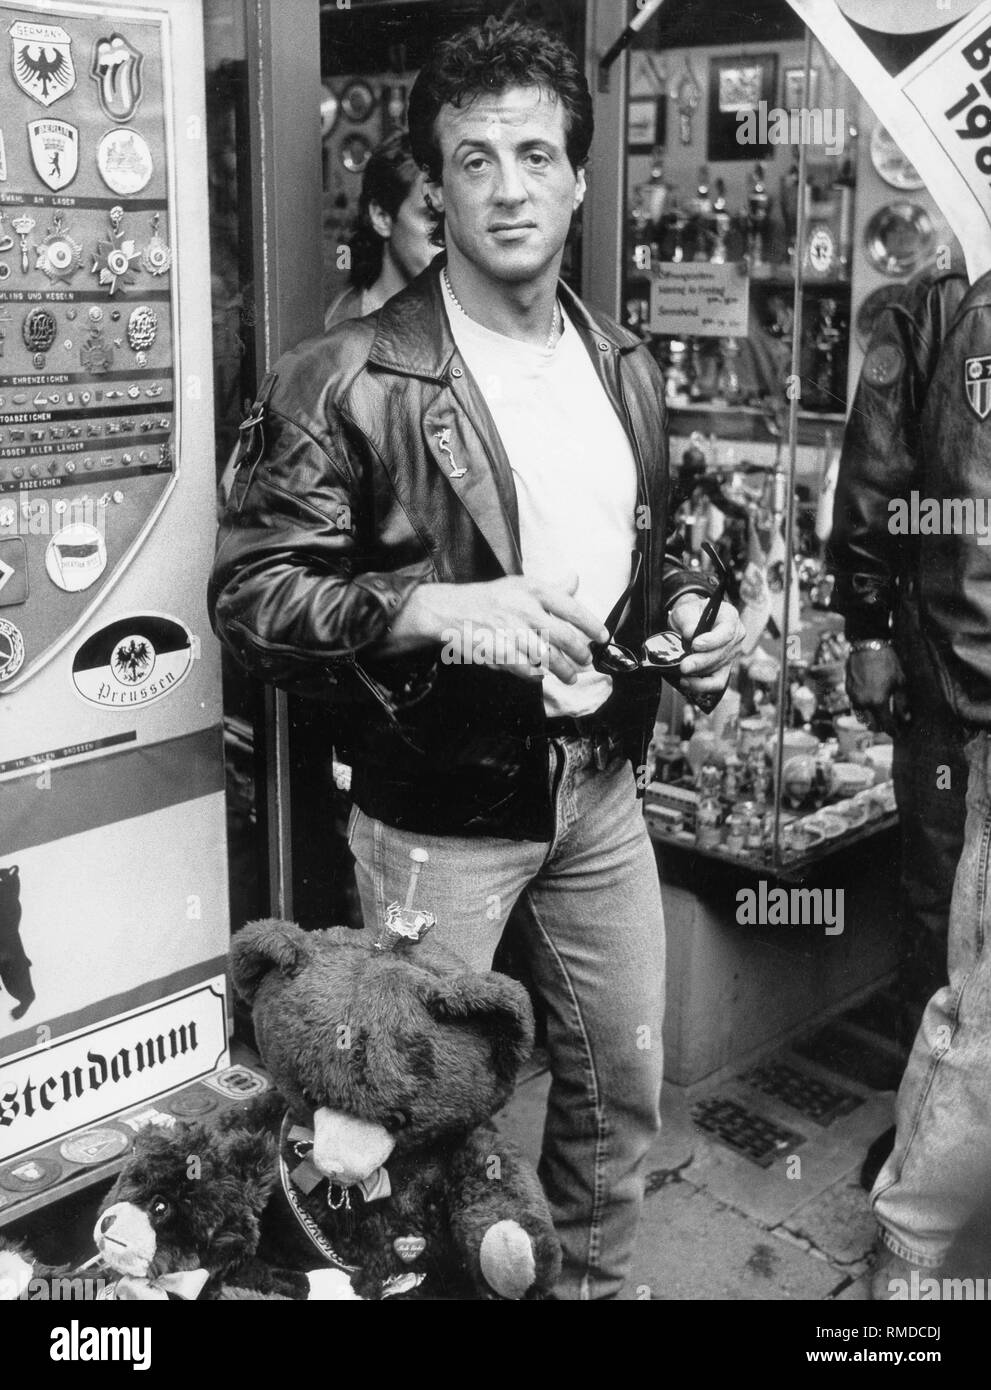 The actor Sylvester Stallone during a visit to Berlin. - Stock Image